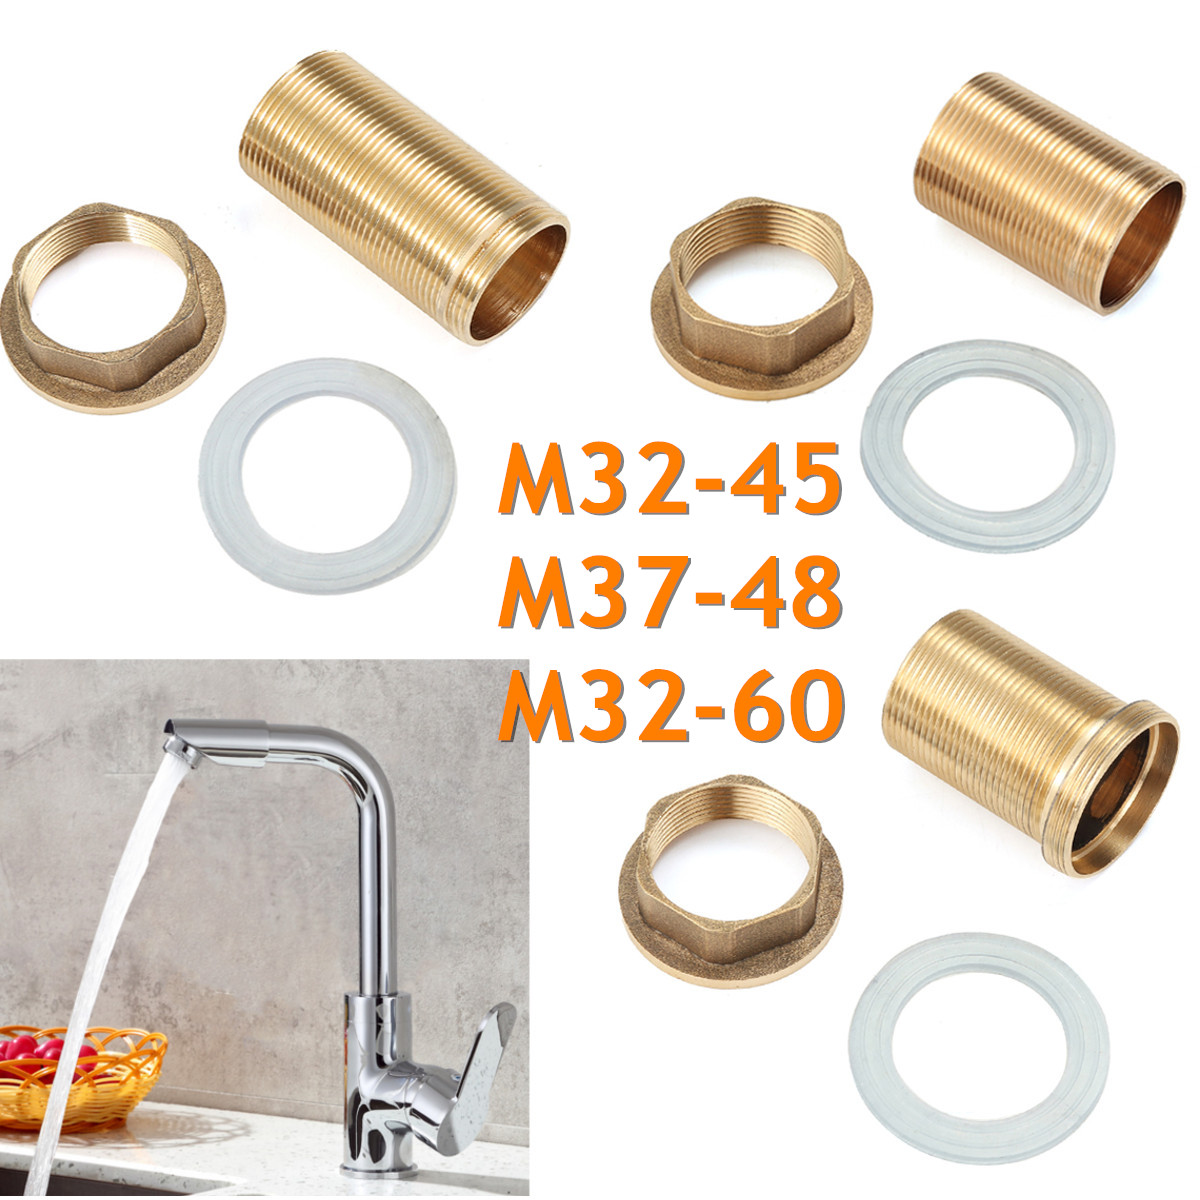 Copper Kitchen Basin Mixer Tap Repair Fitting Kit Faucet Threaded Brass Tube Nut Washer Parts Home Kitchen Faucet Accessories